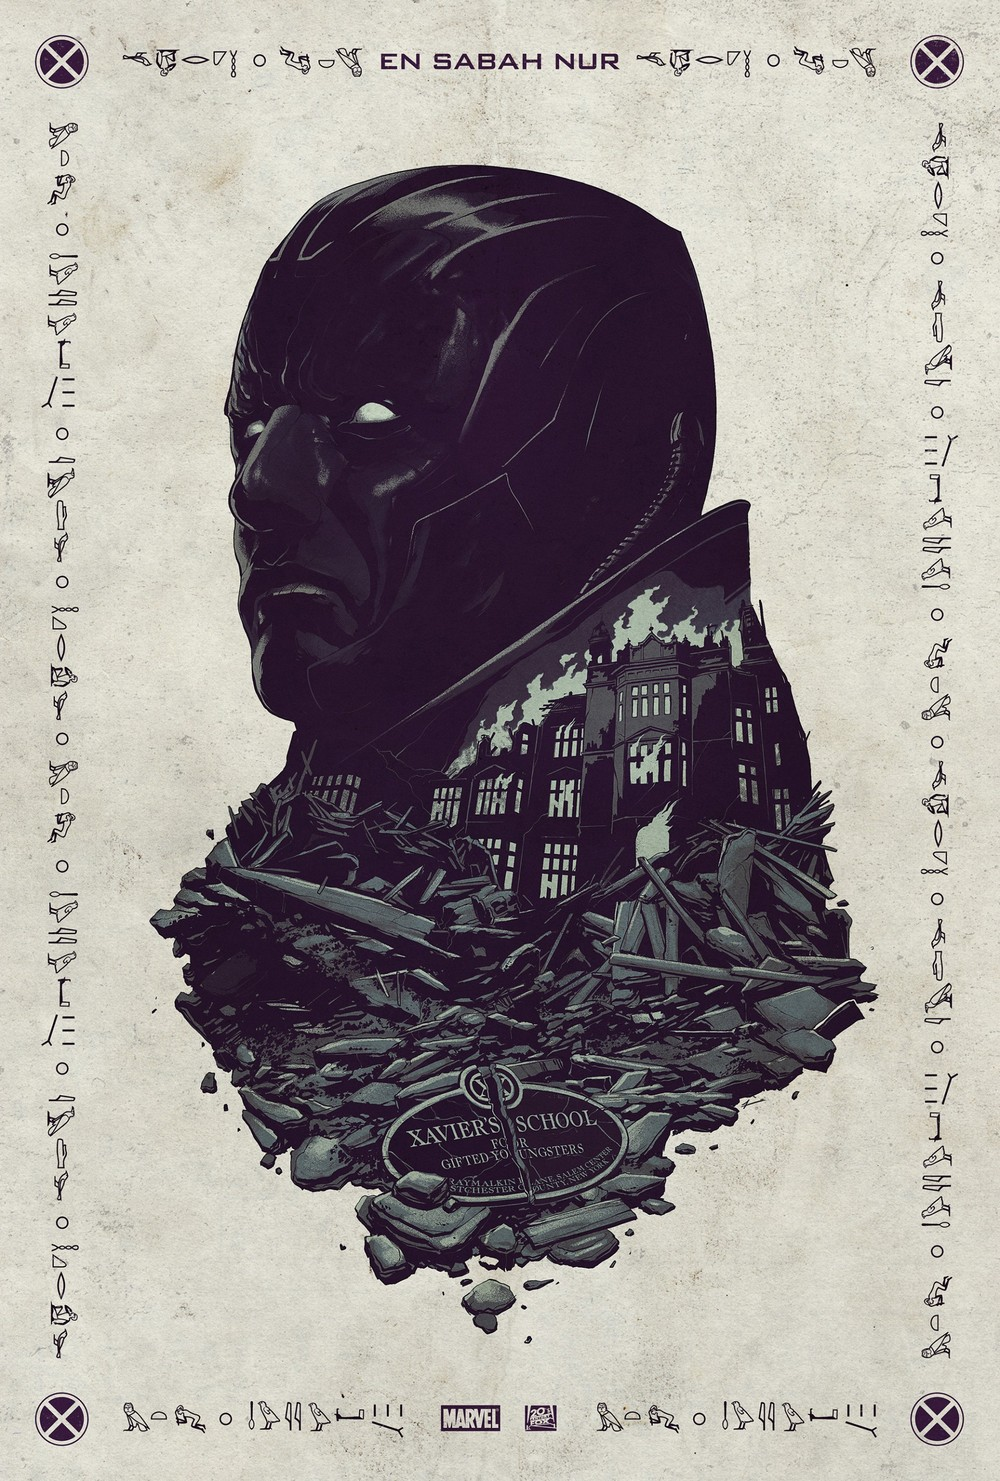 The X-MEN: APOCALYPSE Poster Unveiled, Trailer Release Date Announced